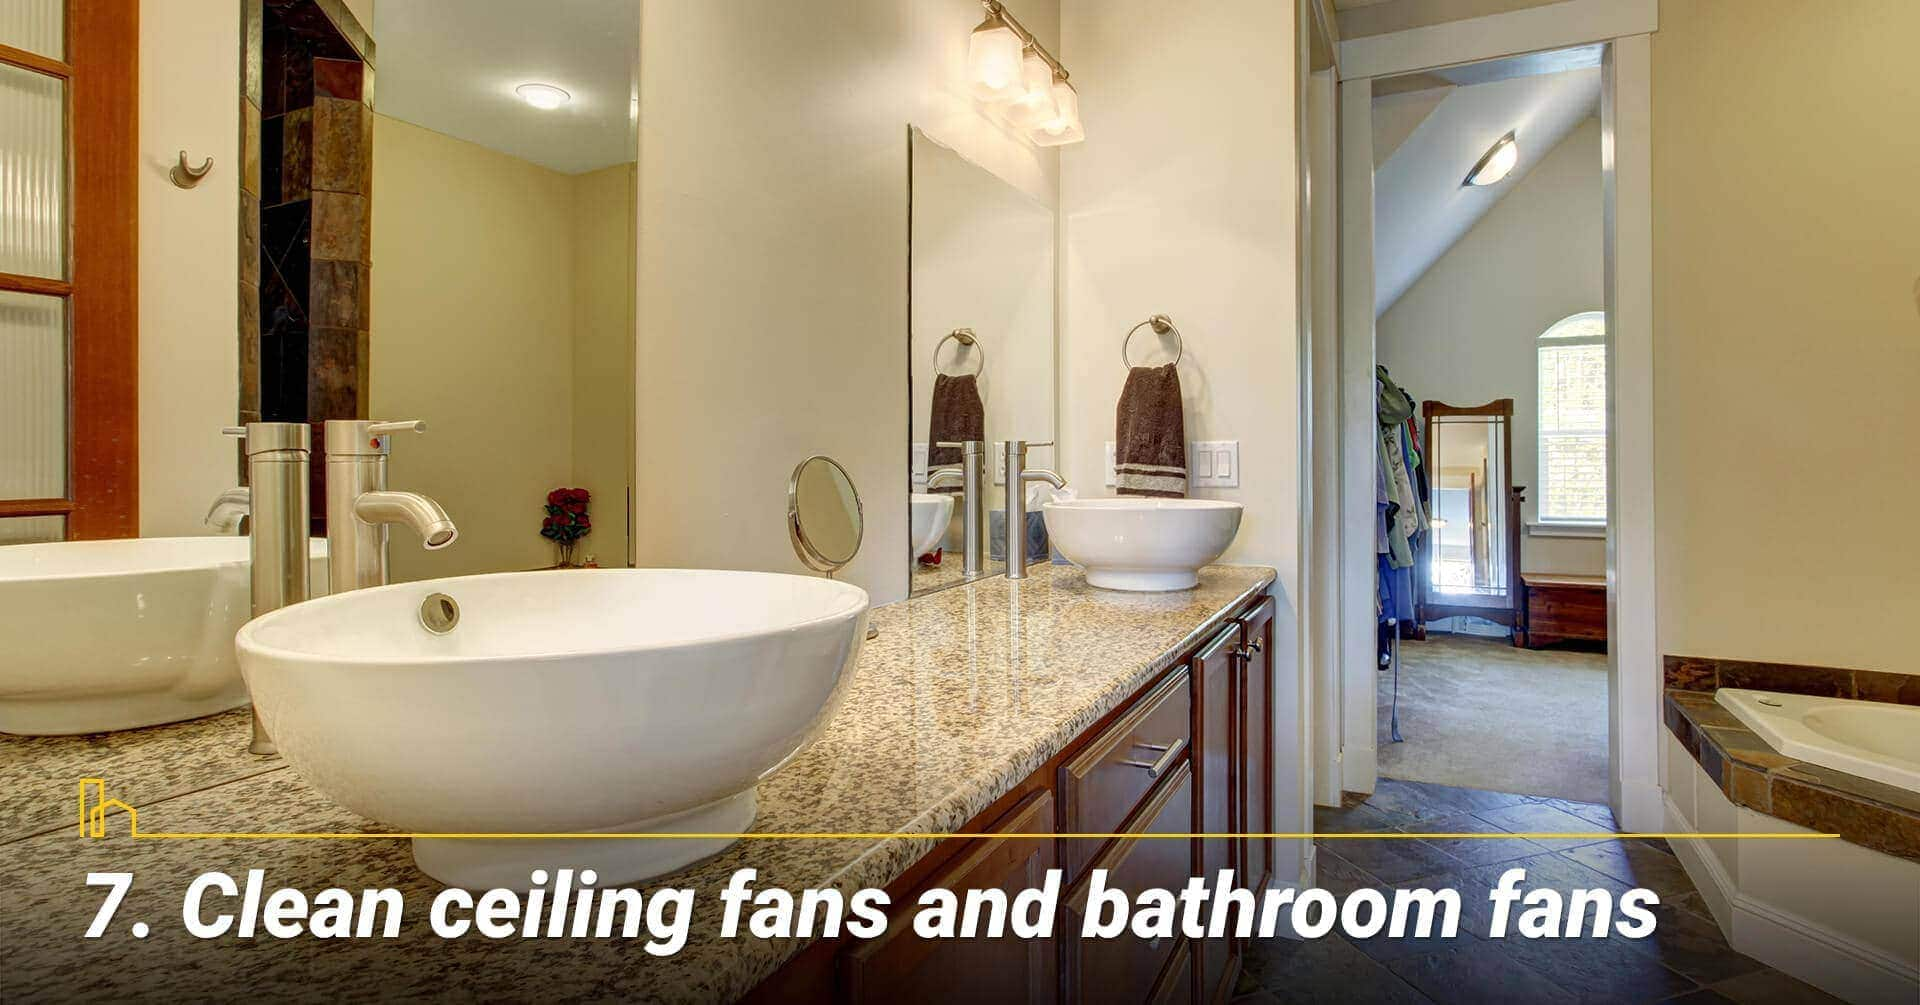 Clean ceiling fans and bathroom fans, keep the fans running